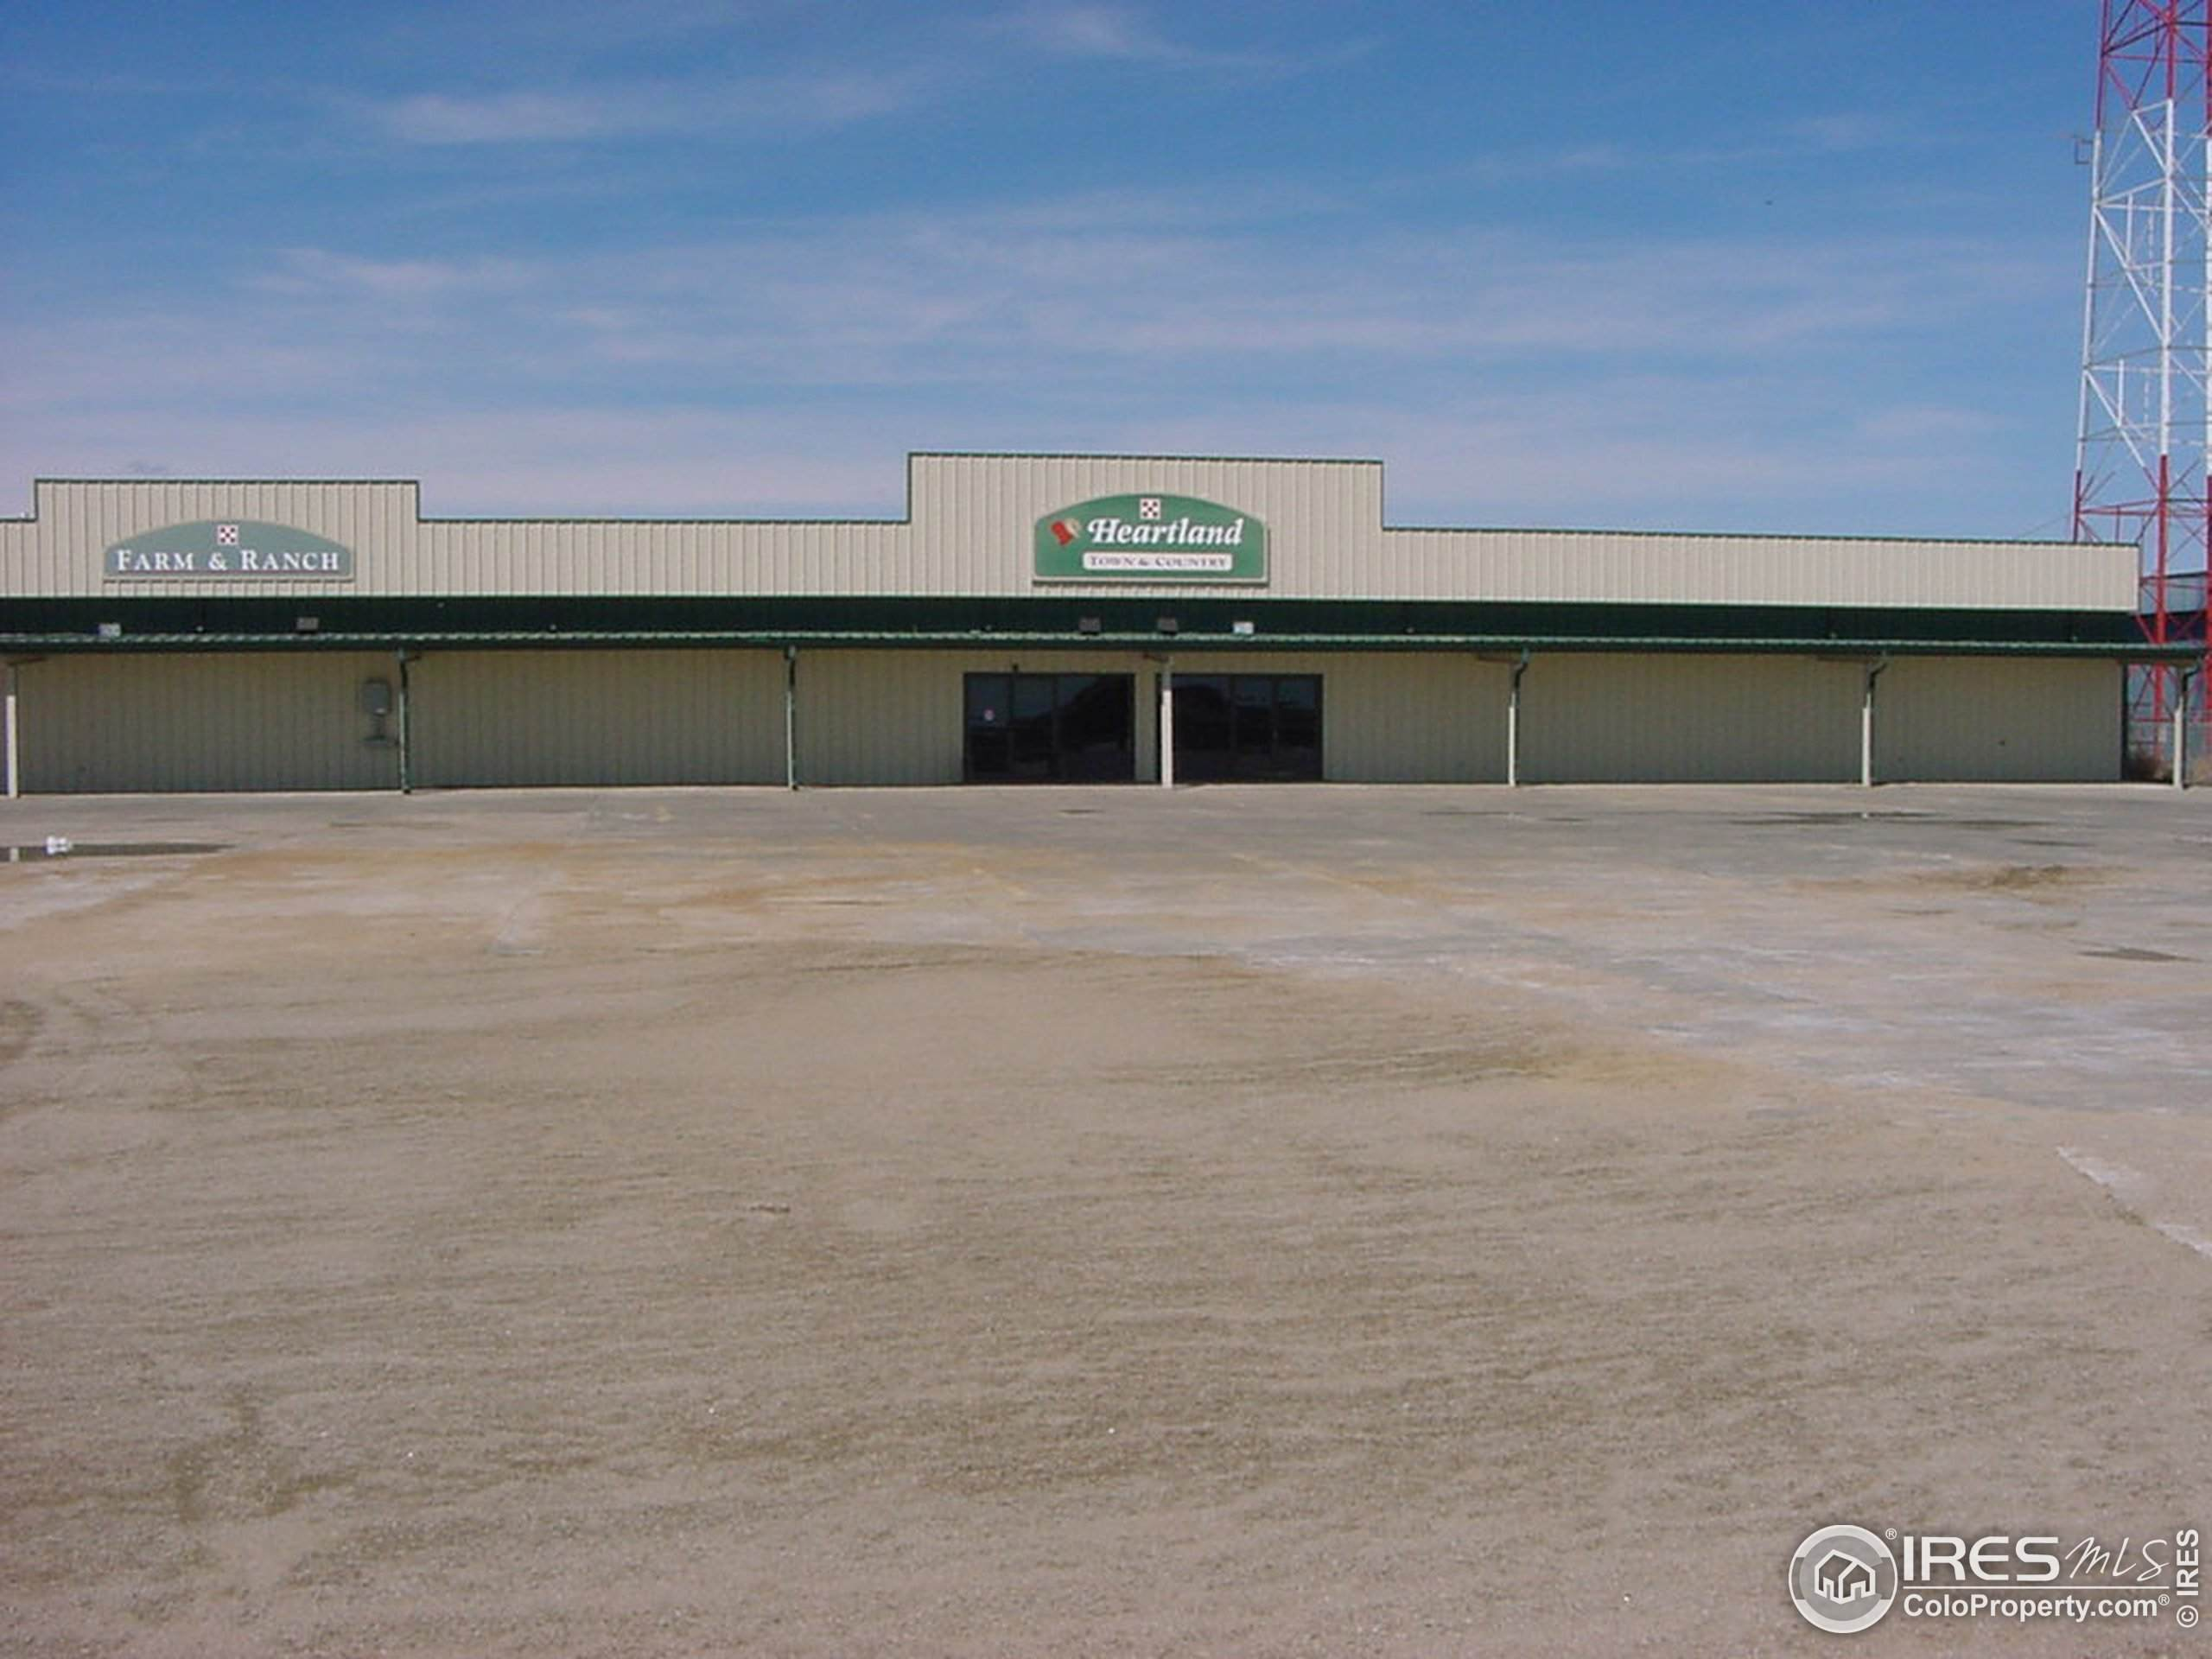 3208 Spruce Dr, Fort Collins, CO 80526 (MLS #895179) :: June's Team